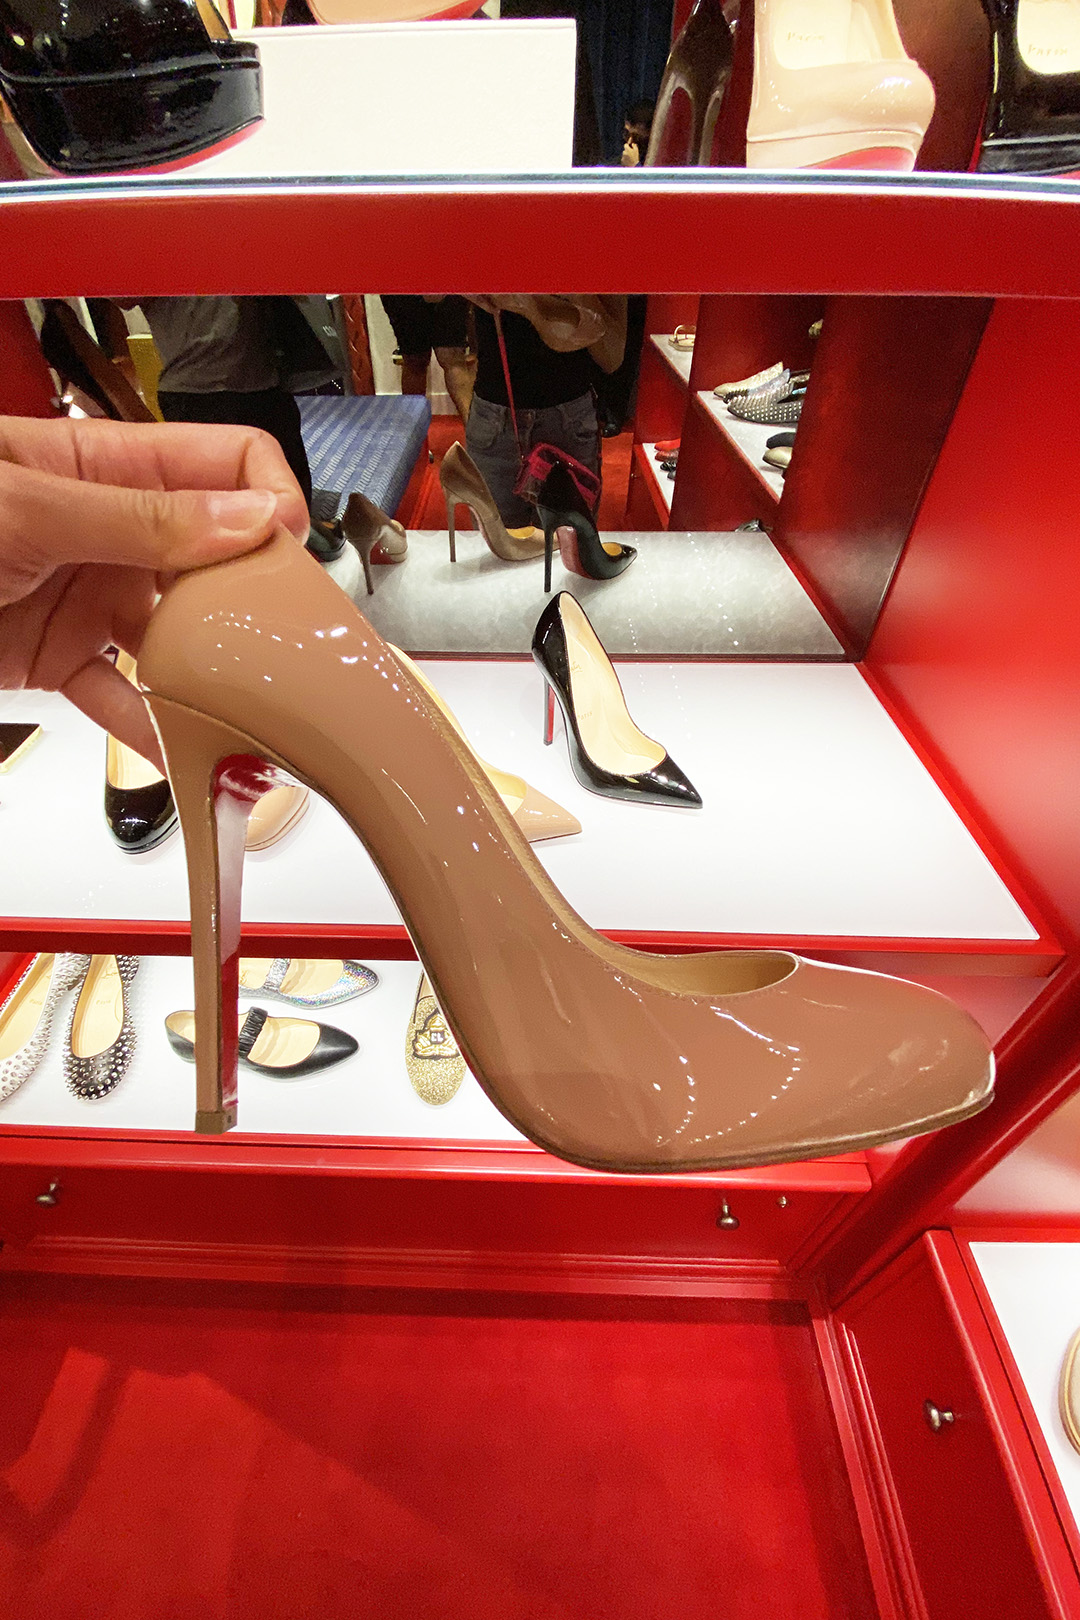 Christian Louboutin Outlet Nude Pumps (The Luxury Lowdown Blog)